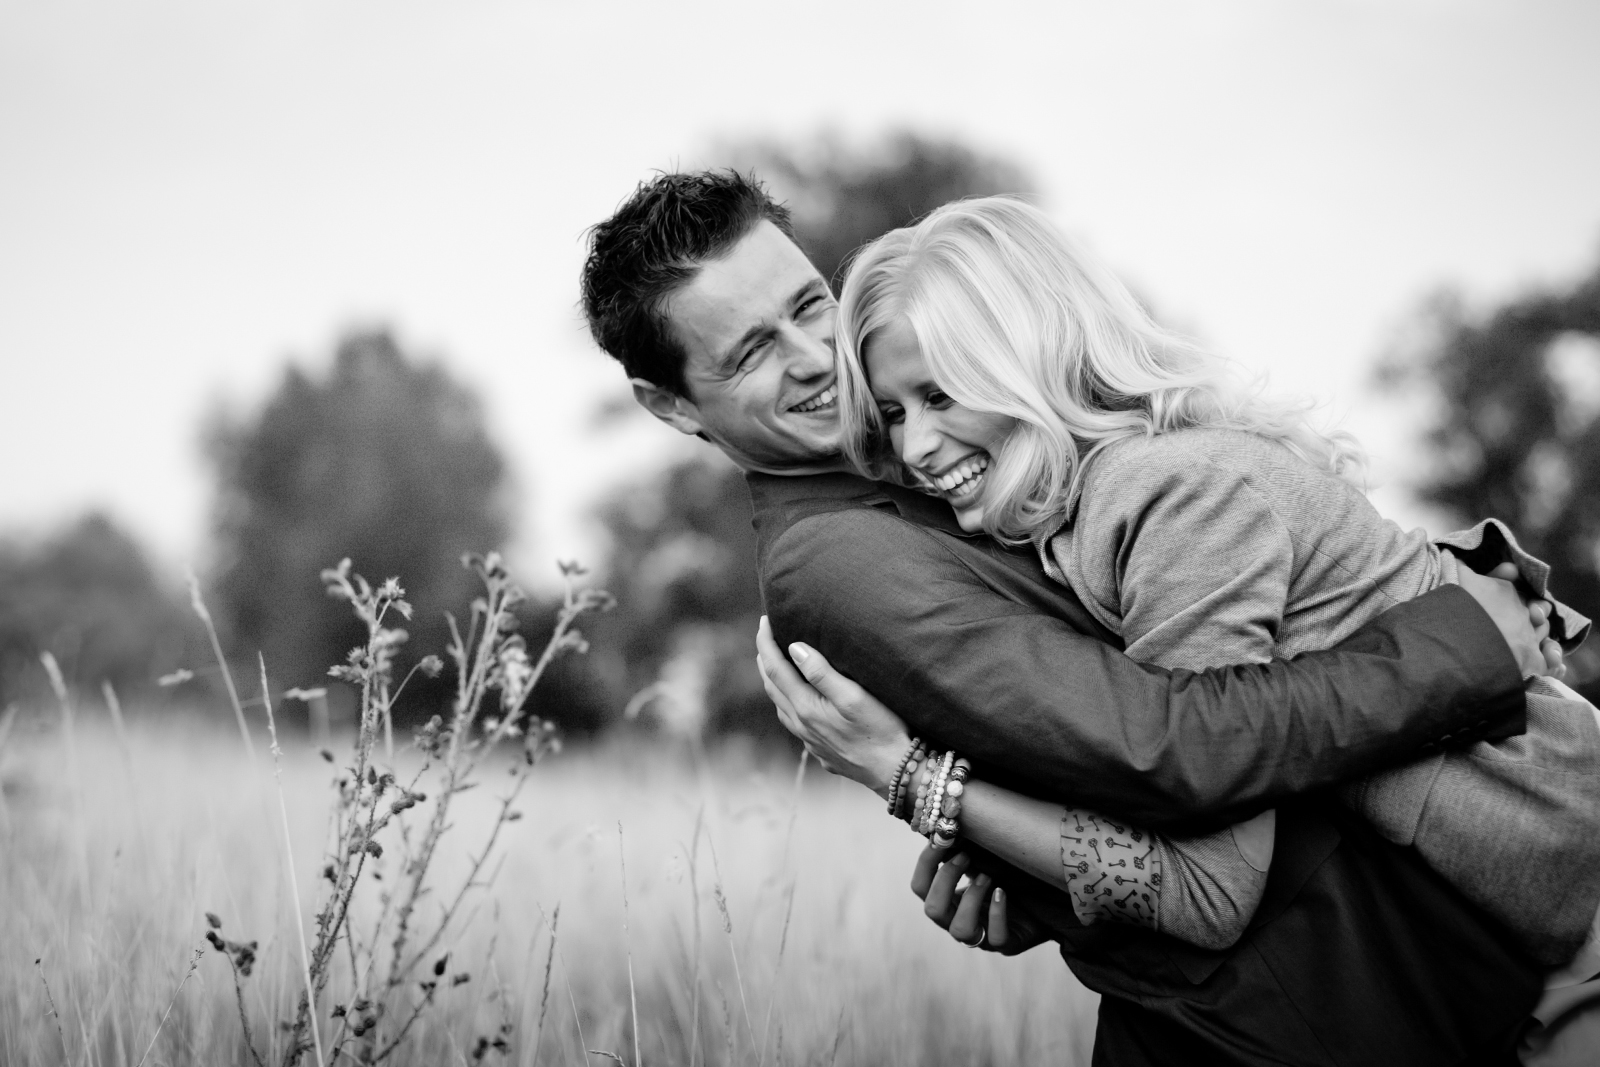 Loveshoot-engagement-prewedding-Zwolle-Fotograaf-09